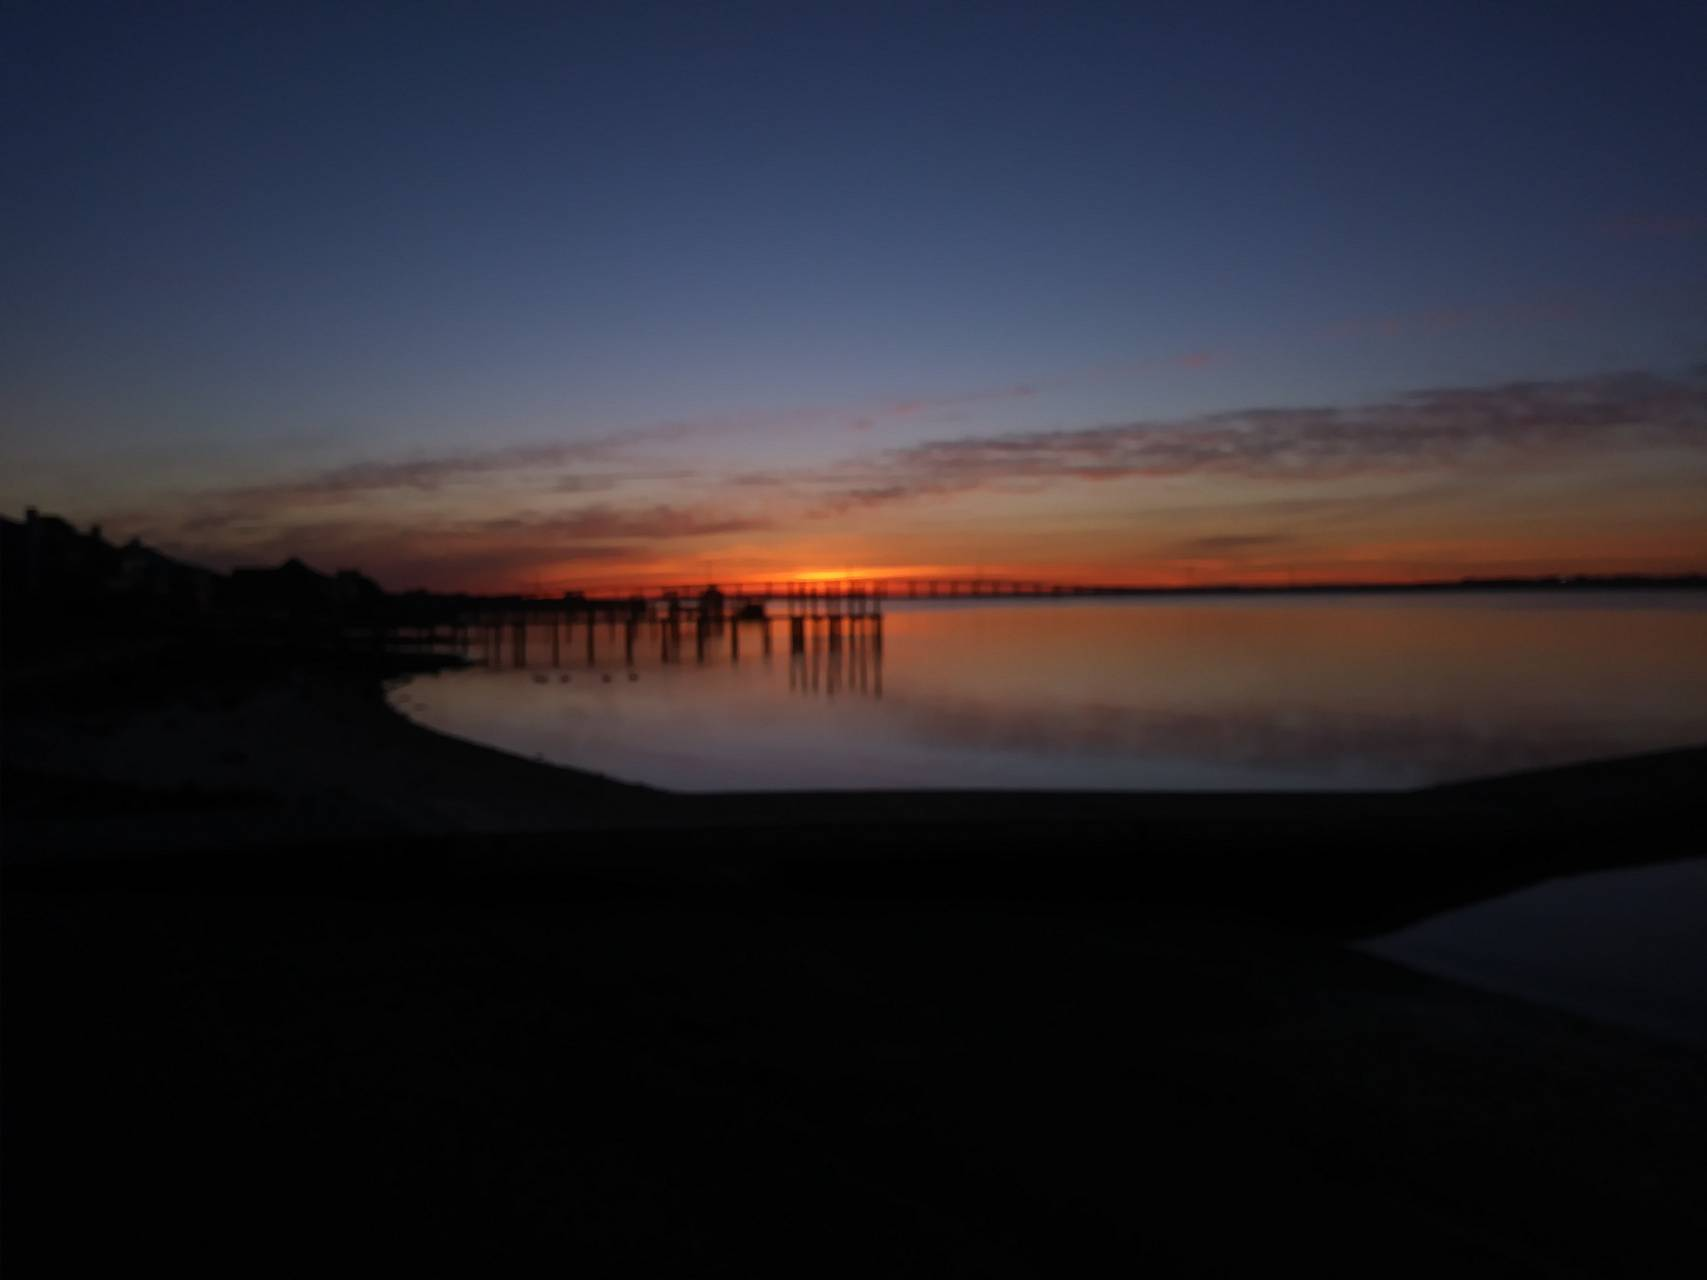 Morning on Bogue